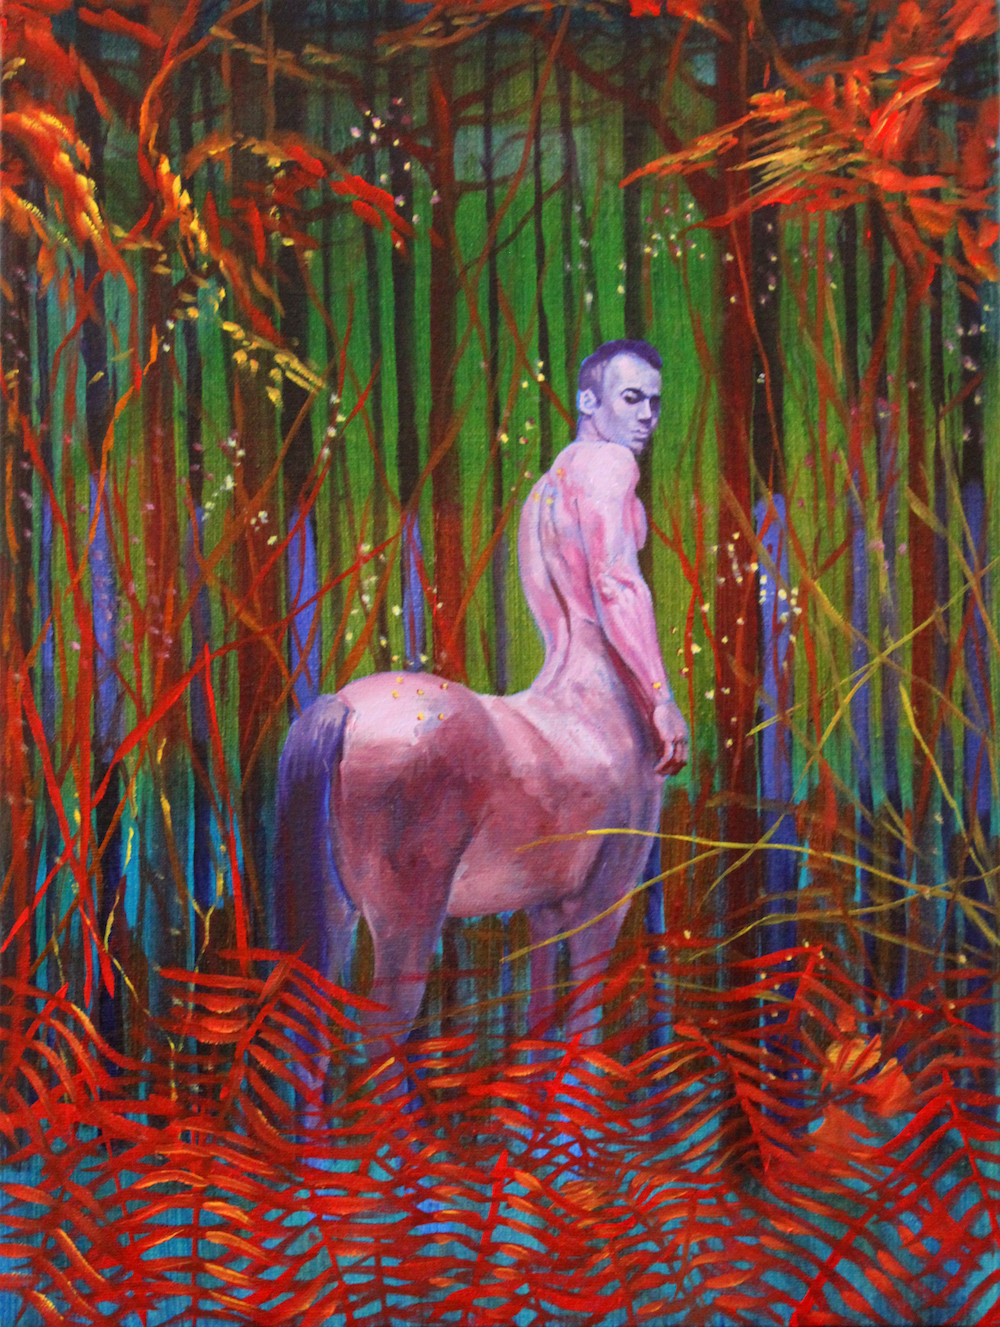 Mark Liam Smith_Crimson Stallion_oil on canvas_16x12 inches_2017.jpg